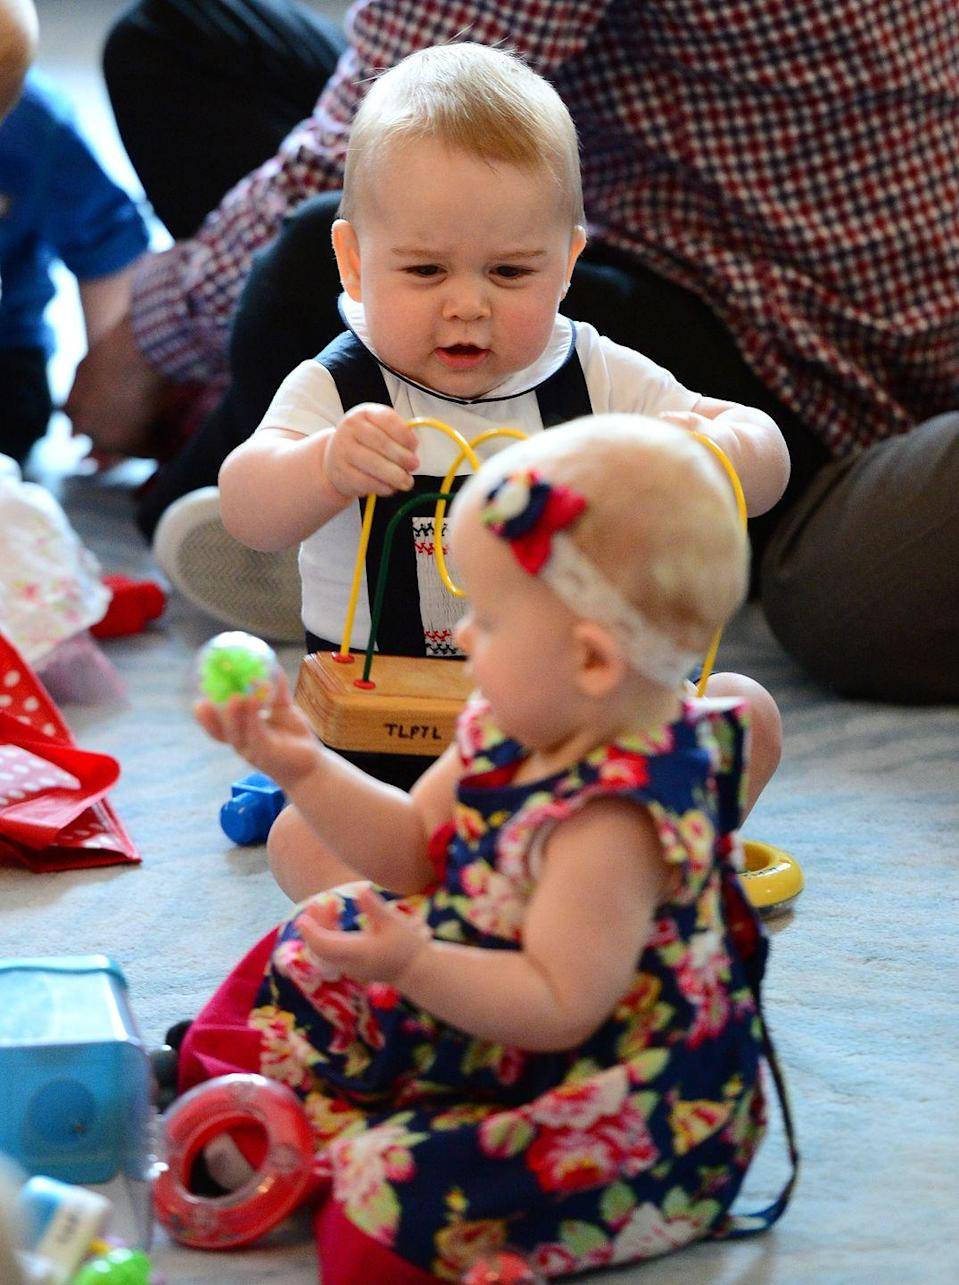 """<p>How can you not squeal looking at those cheeks?! It's not humanly possible. <a href=""""https://www.goodhousekeeping.com/life/a22506679/kate-middleton-prince-george-birthday-portrait/"""" rel=""""nofollow noopener"""" target=""""_blank"""" data-ylk=""""slk:Prince George"""" class=""""link rapid-noclick-resp"""">Prince George</a> playing with his toy during his parents' tour of New Zealand and Australia is just all around too much. </p>"""